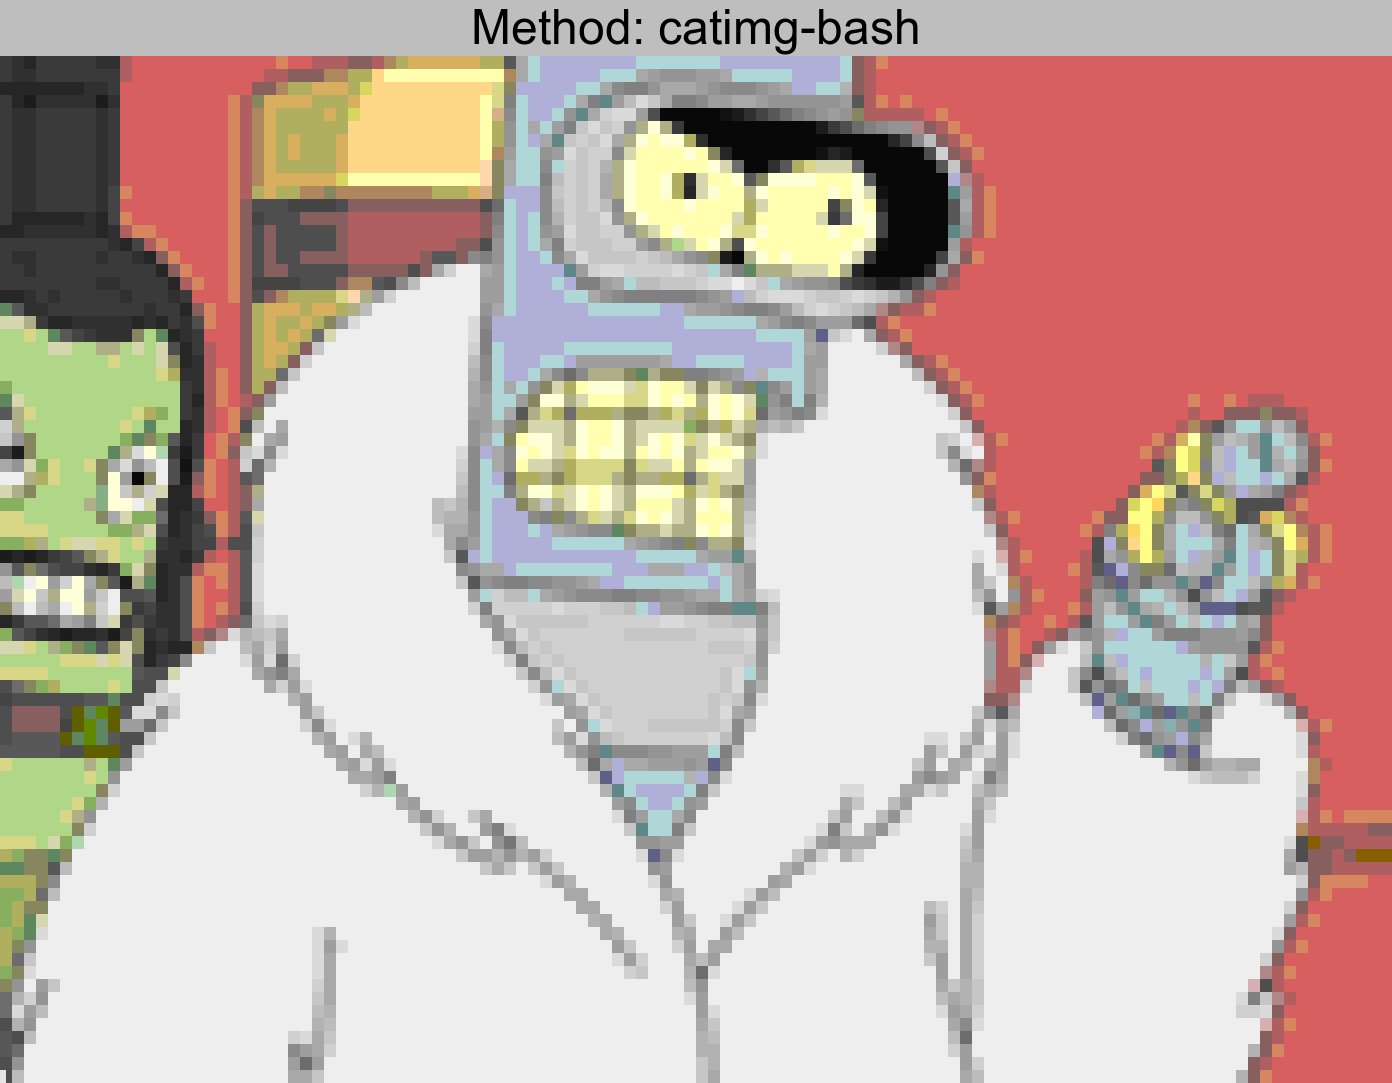 bender.png converted using catimg-bash